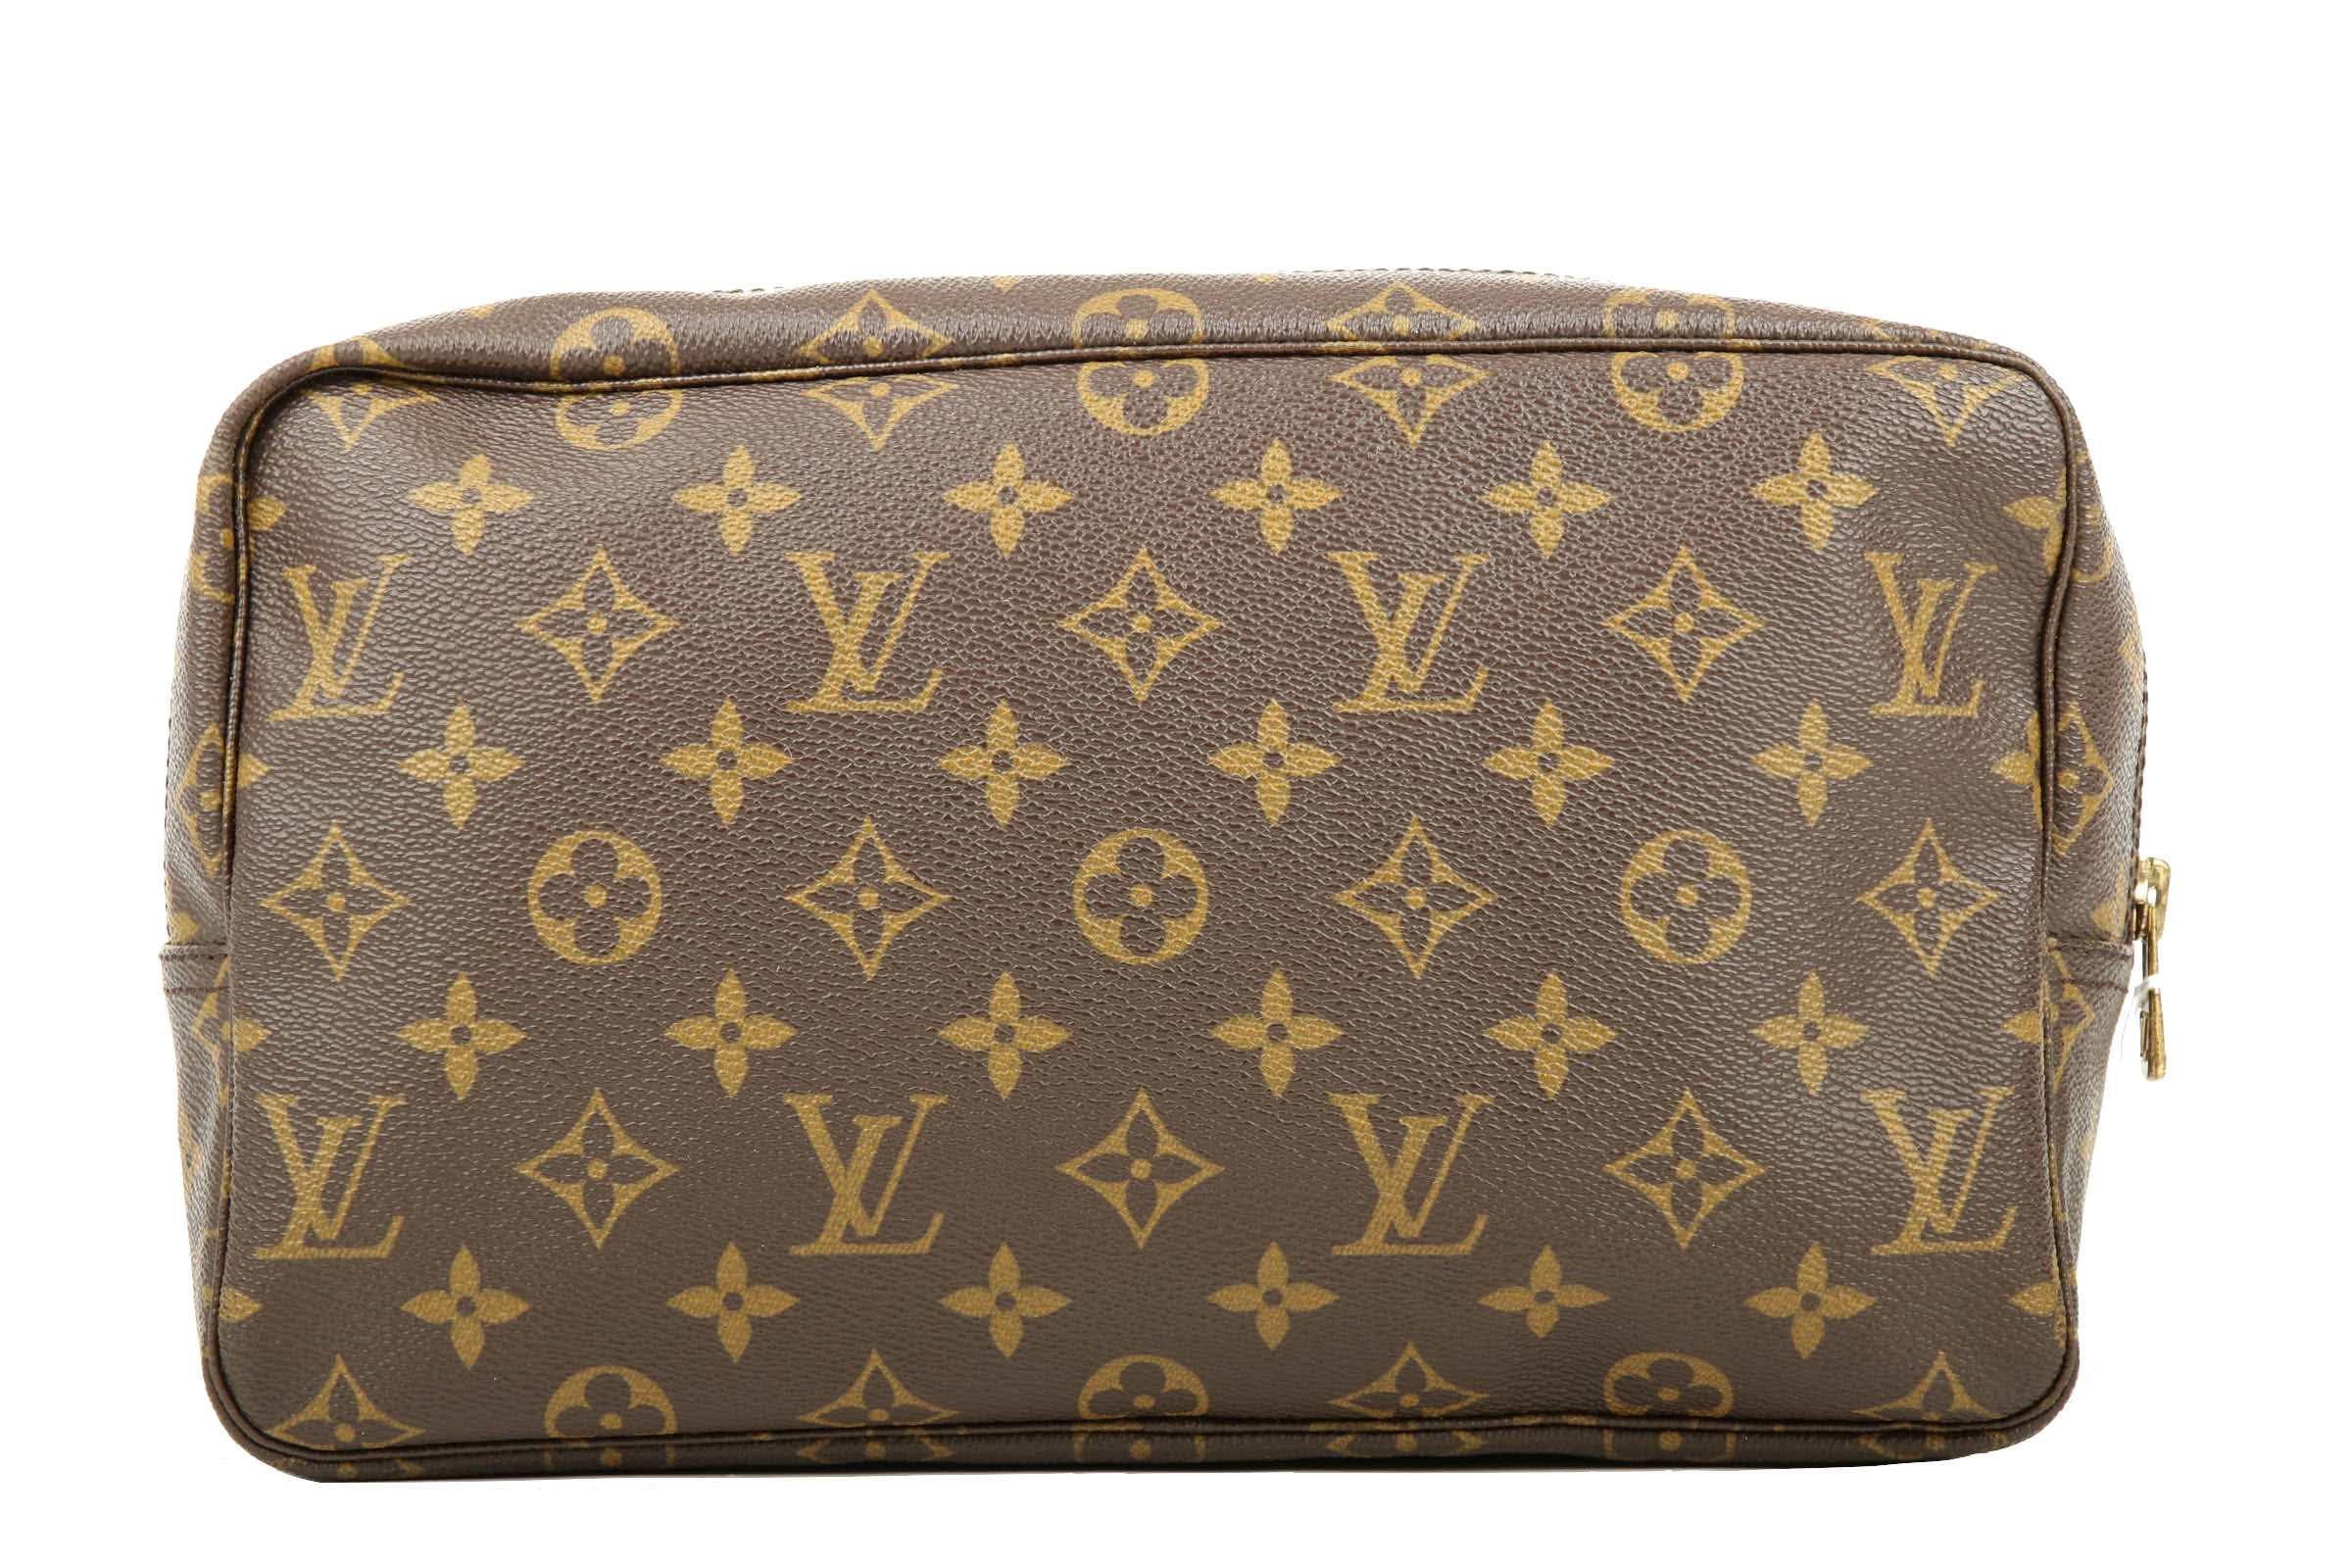 a998ab50b2581 Louis Vuitton Trousse Toilette 28 Monogram Canvas